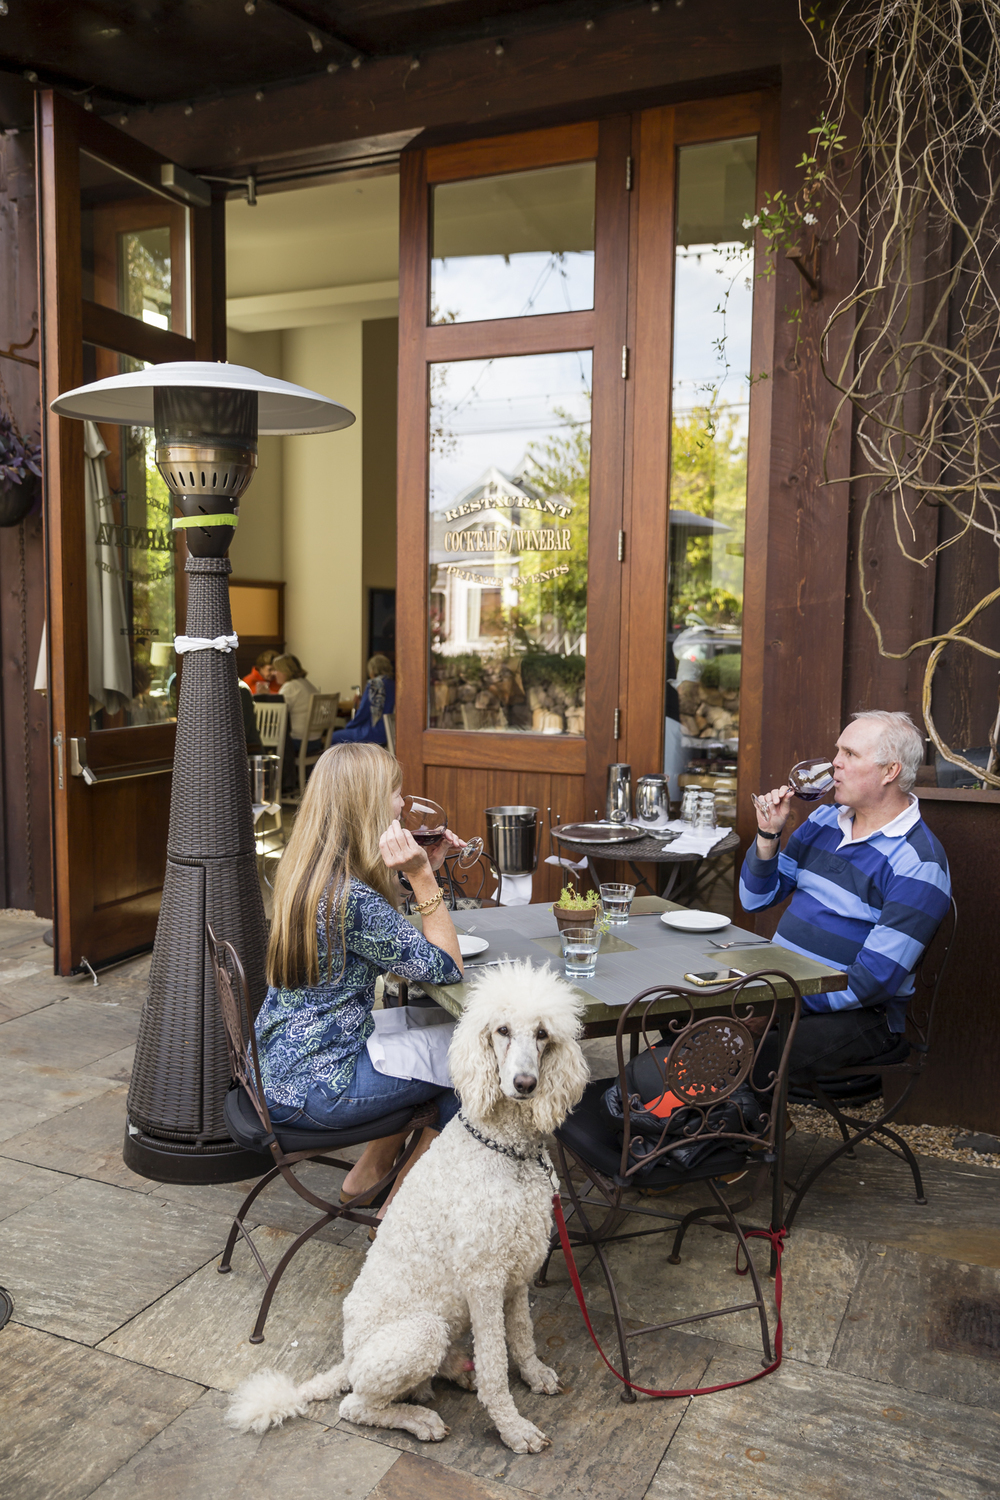 On November 5th, 2015 in Healdsburg, CA, Leslie French (lt) and Charles Hill (rt) and his poodle Coco dine at Barndiva, a farm-to-fork American eatery with an adjoining art studio and outside courtyard. Located in Sonoma, the 1768-square mile county is chocked full of wineries, dairies, micro-distilleries, bakeries, restaurants, gardens, and orchards and is quickly becoming know as the food-iest place on earth.